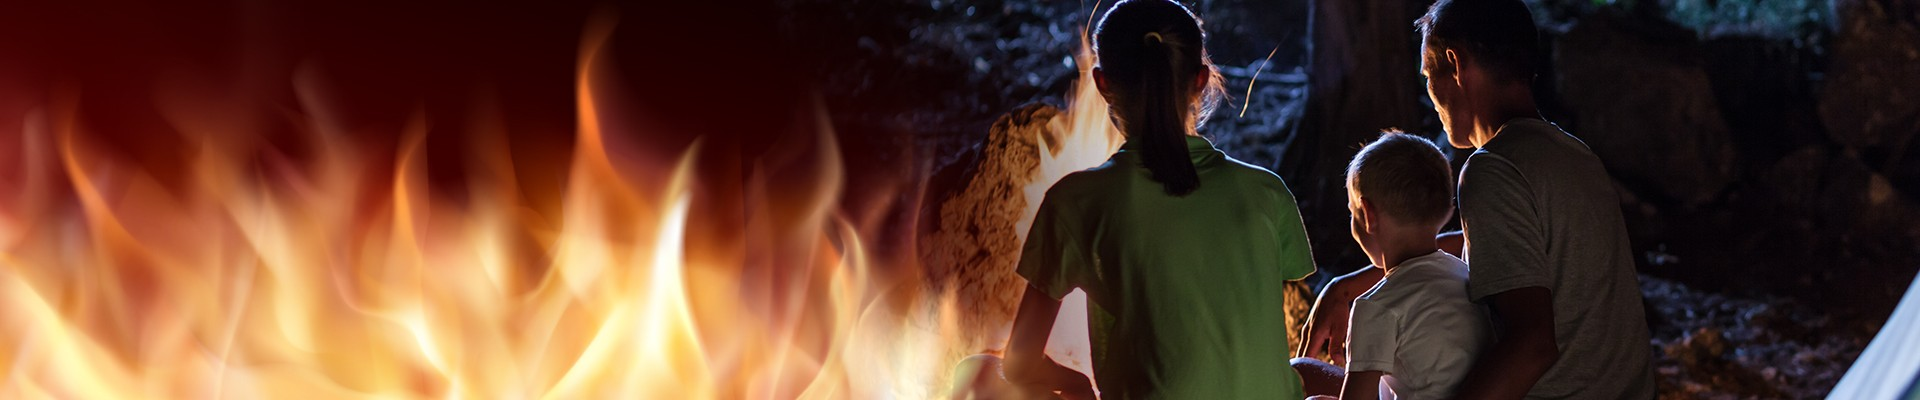 Keeping your kids safe around a campfire Tip #5: Use your own discretion